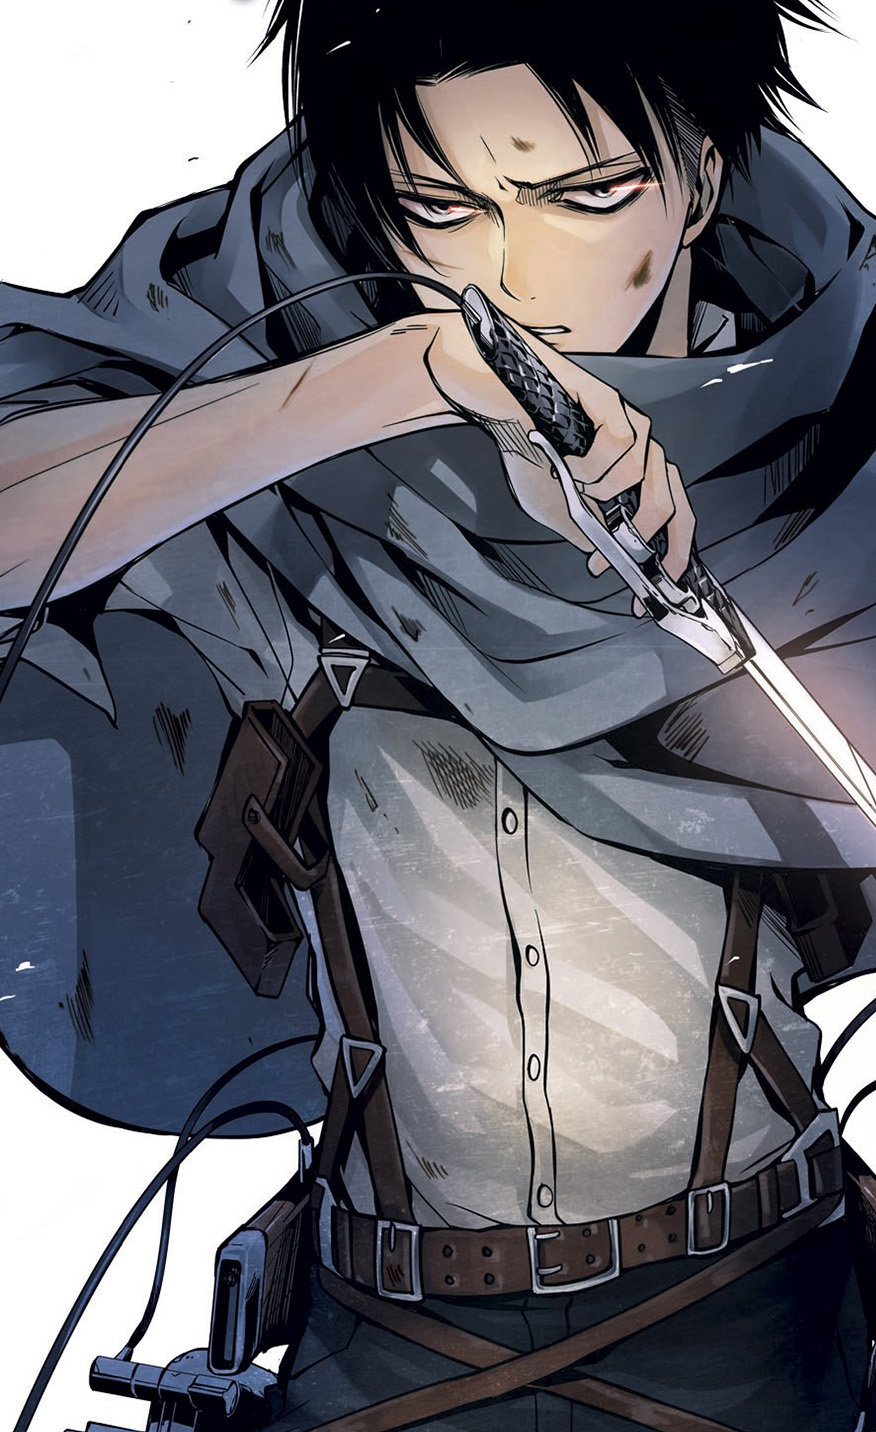 Levi Ackerman Iphone Wallpaper Posted By Samantha Sellers